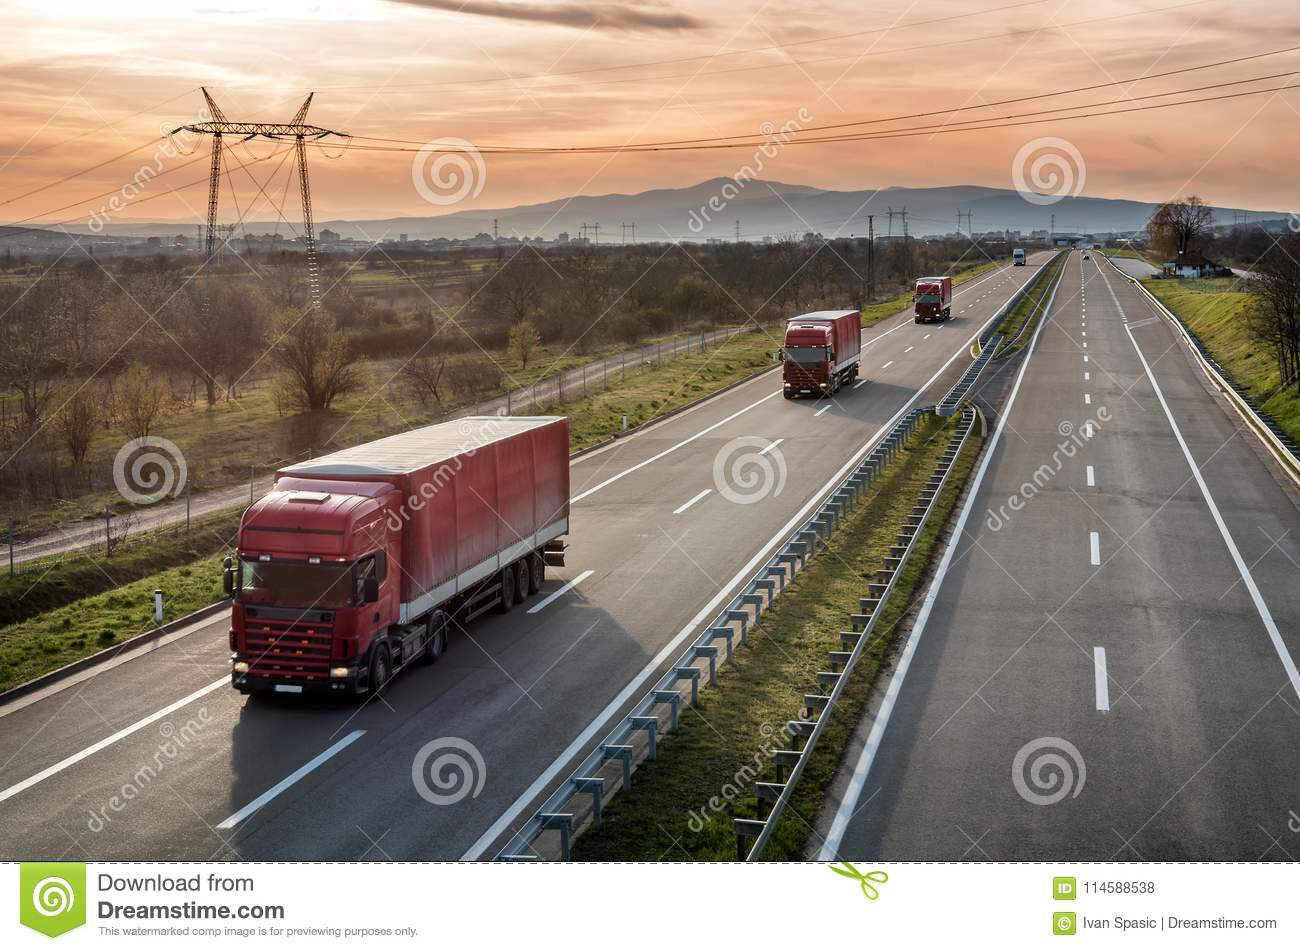 Caravan of Red Lorry trucks on highway